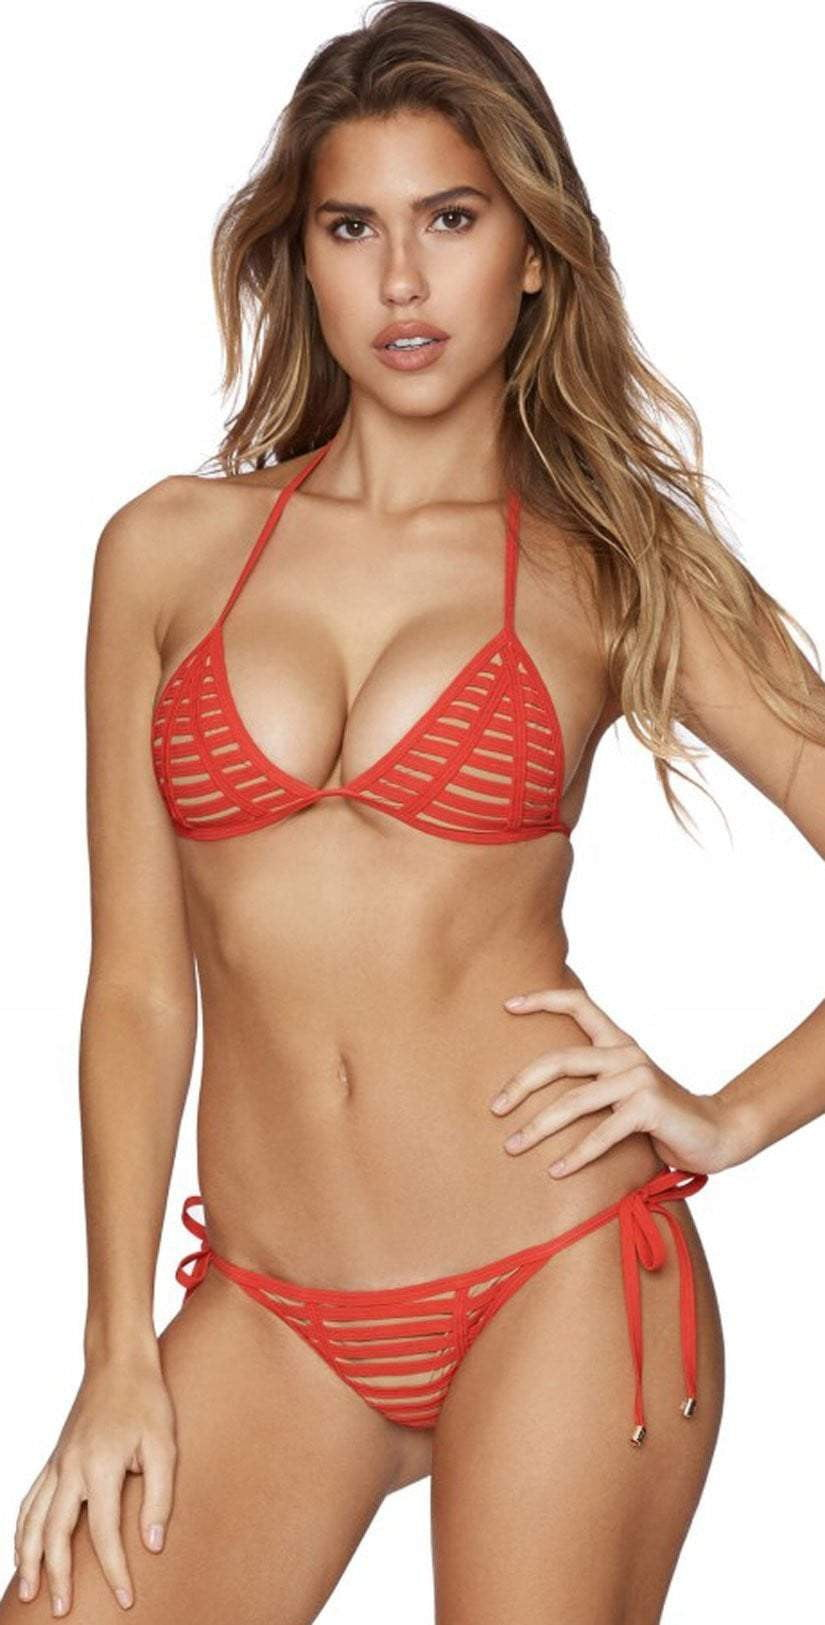 Beach Bunny Hard Summer Tie Side Skimpy Bottom in Red B16104B2-REDD front view of top and bottom